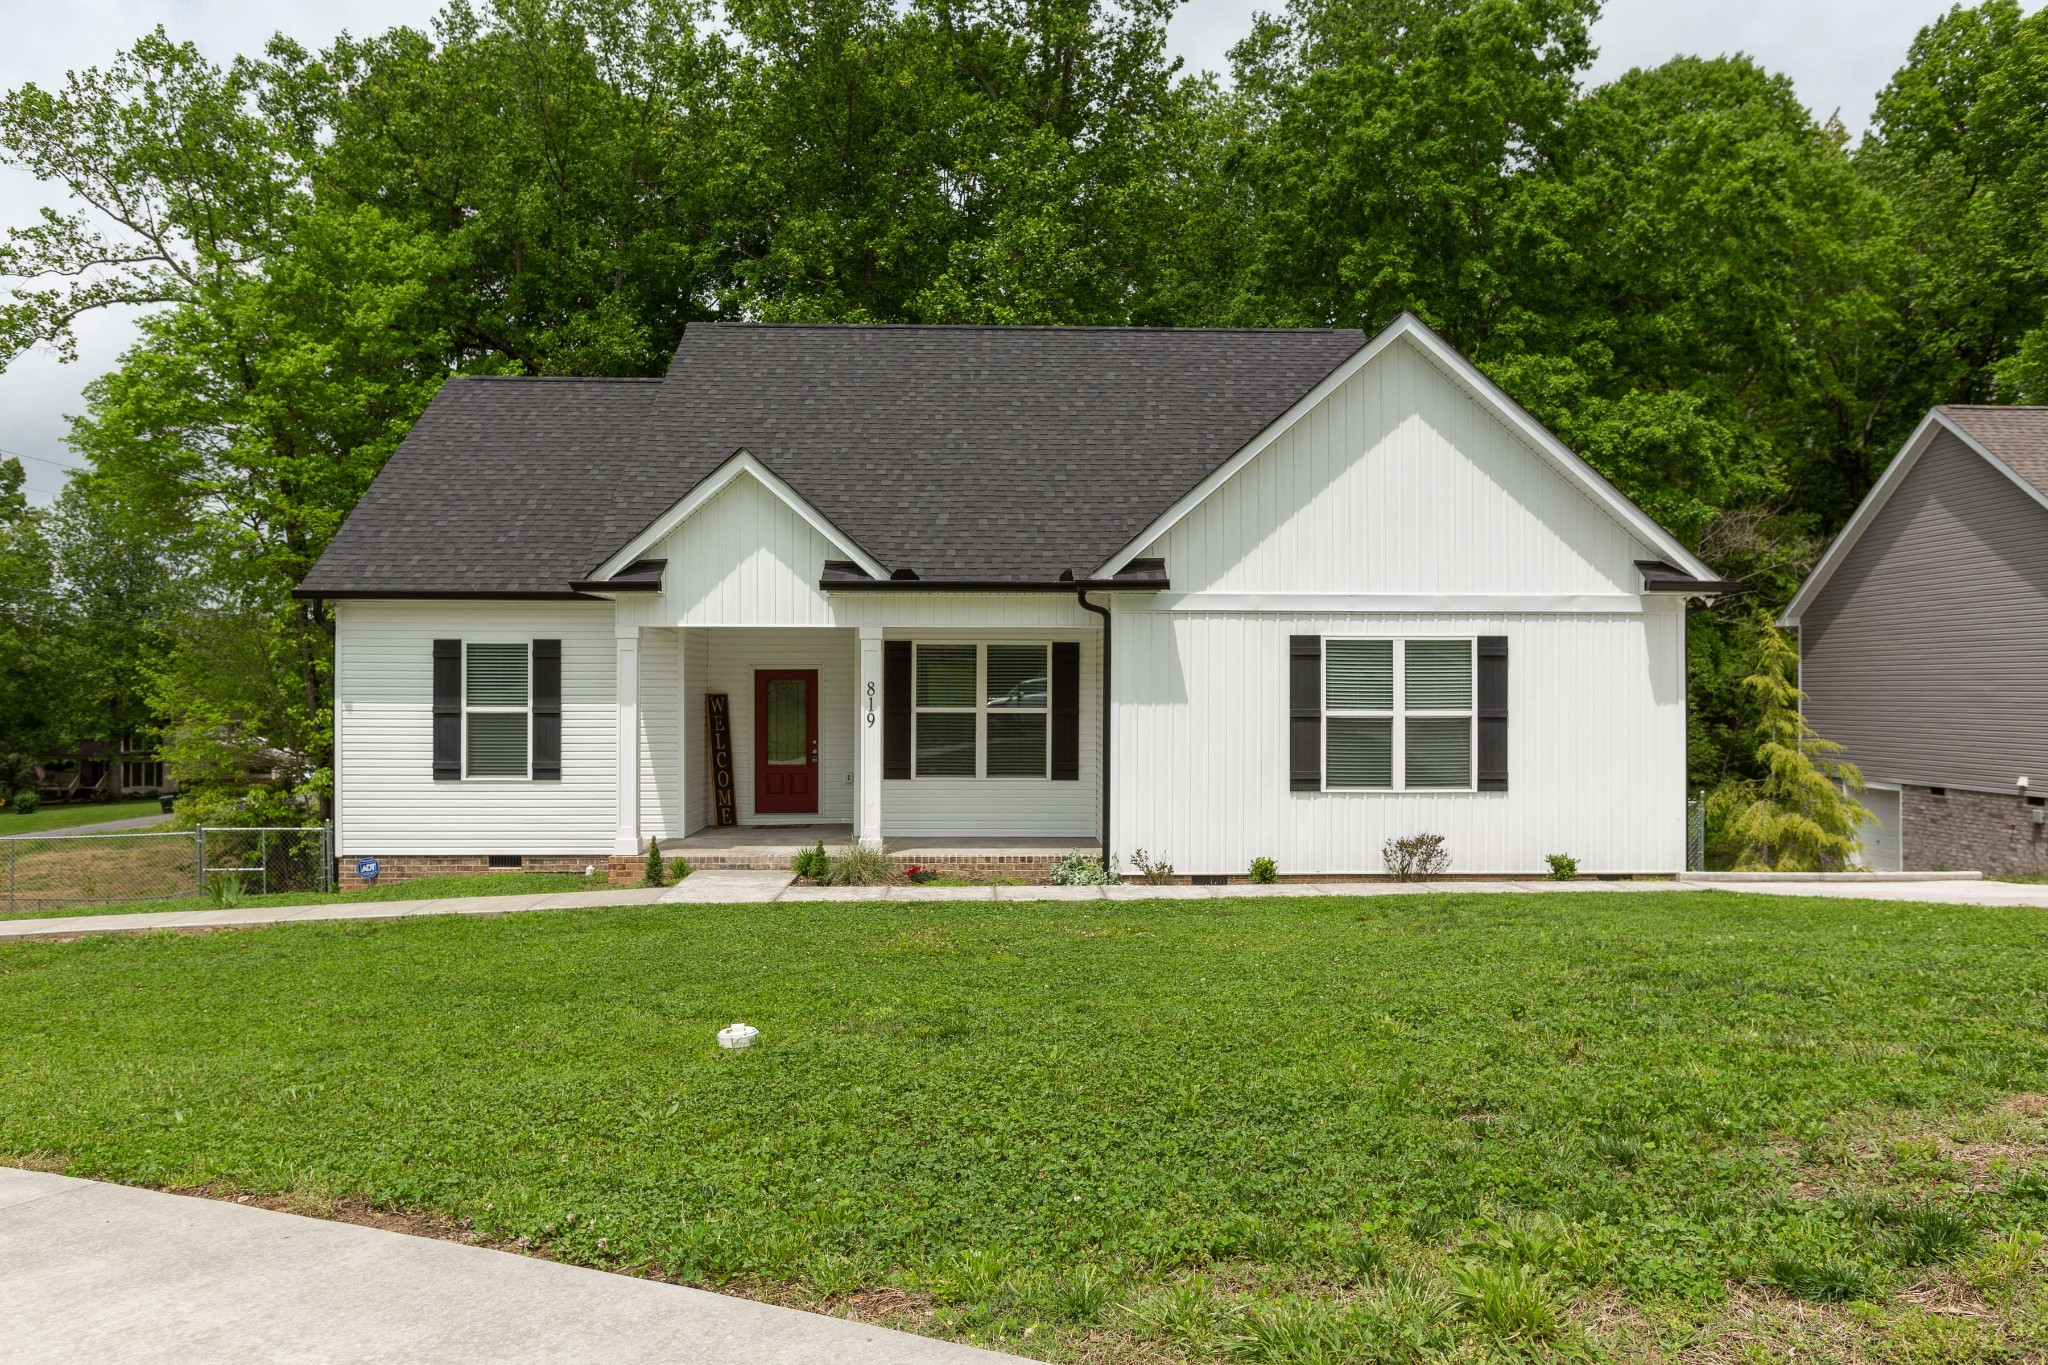 819 Hunters Crossing Ln Property Photo - Springfield, TN real estate listing